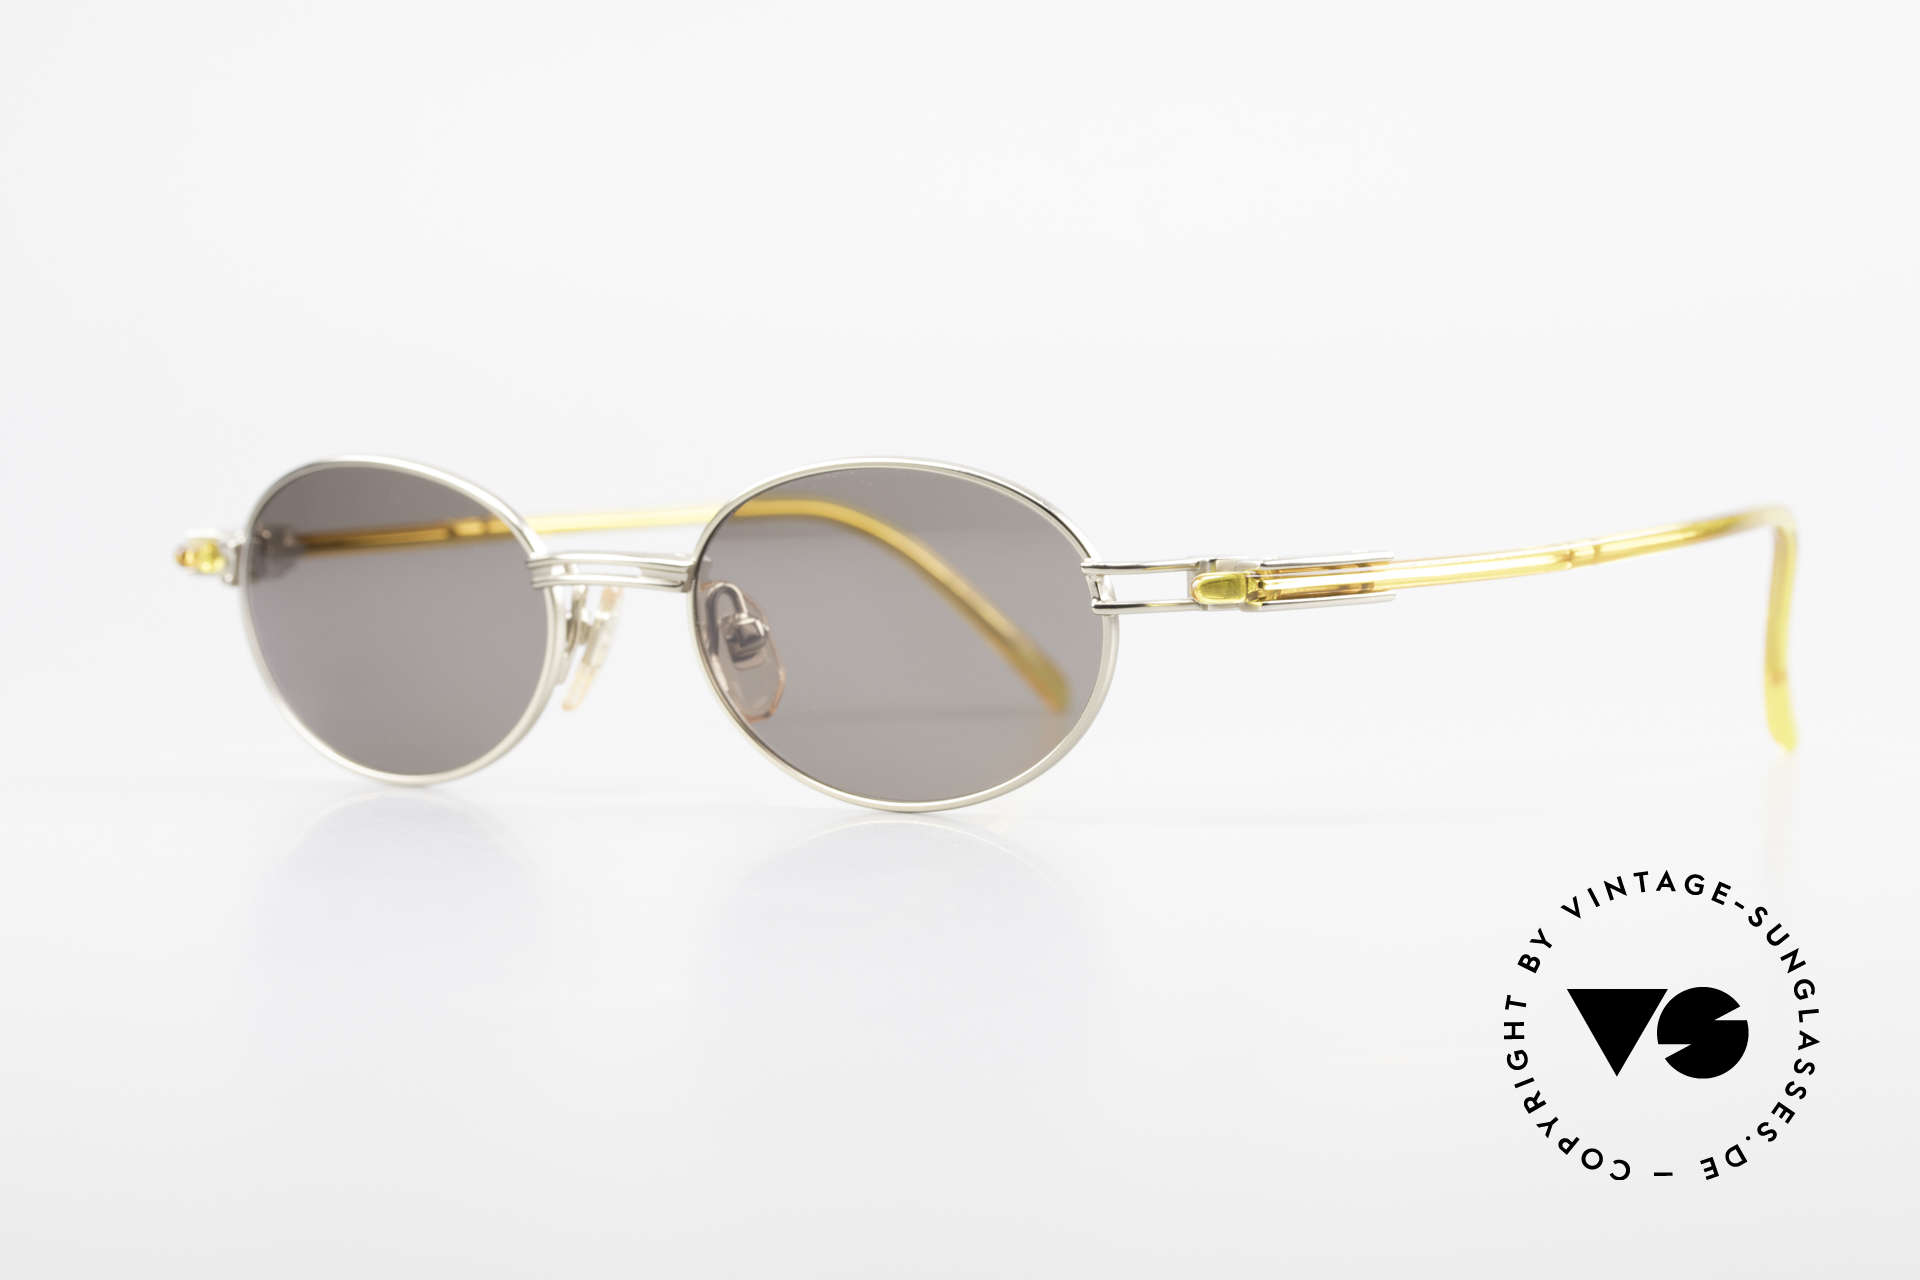 Yohji Yamamoto 52-7202 Designer Shades Oval Vintage, outstanding materials and craftsmanship; made in Japan, Made for Men and Women